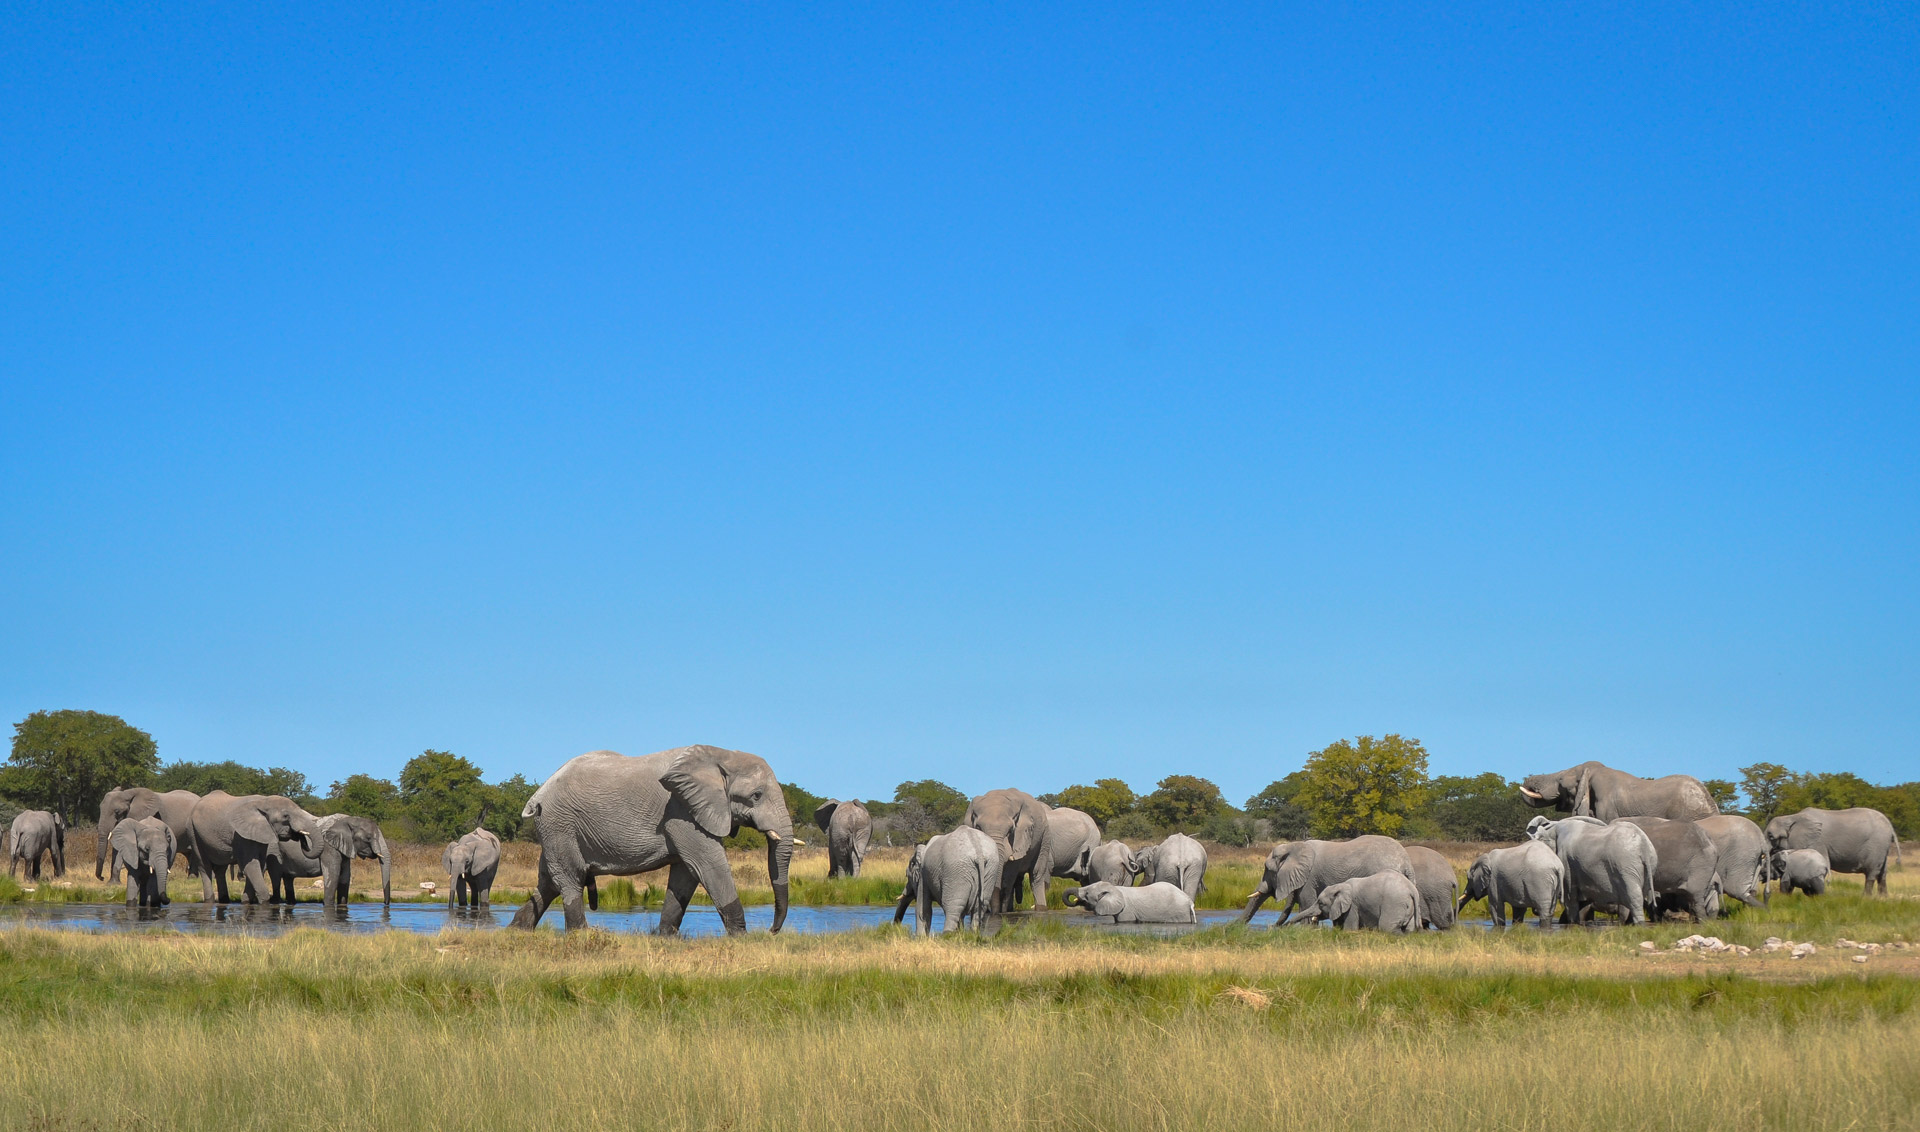 Elephant herd at Goas in Etosha National Park